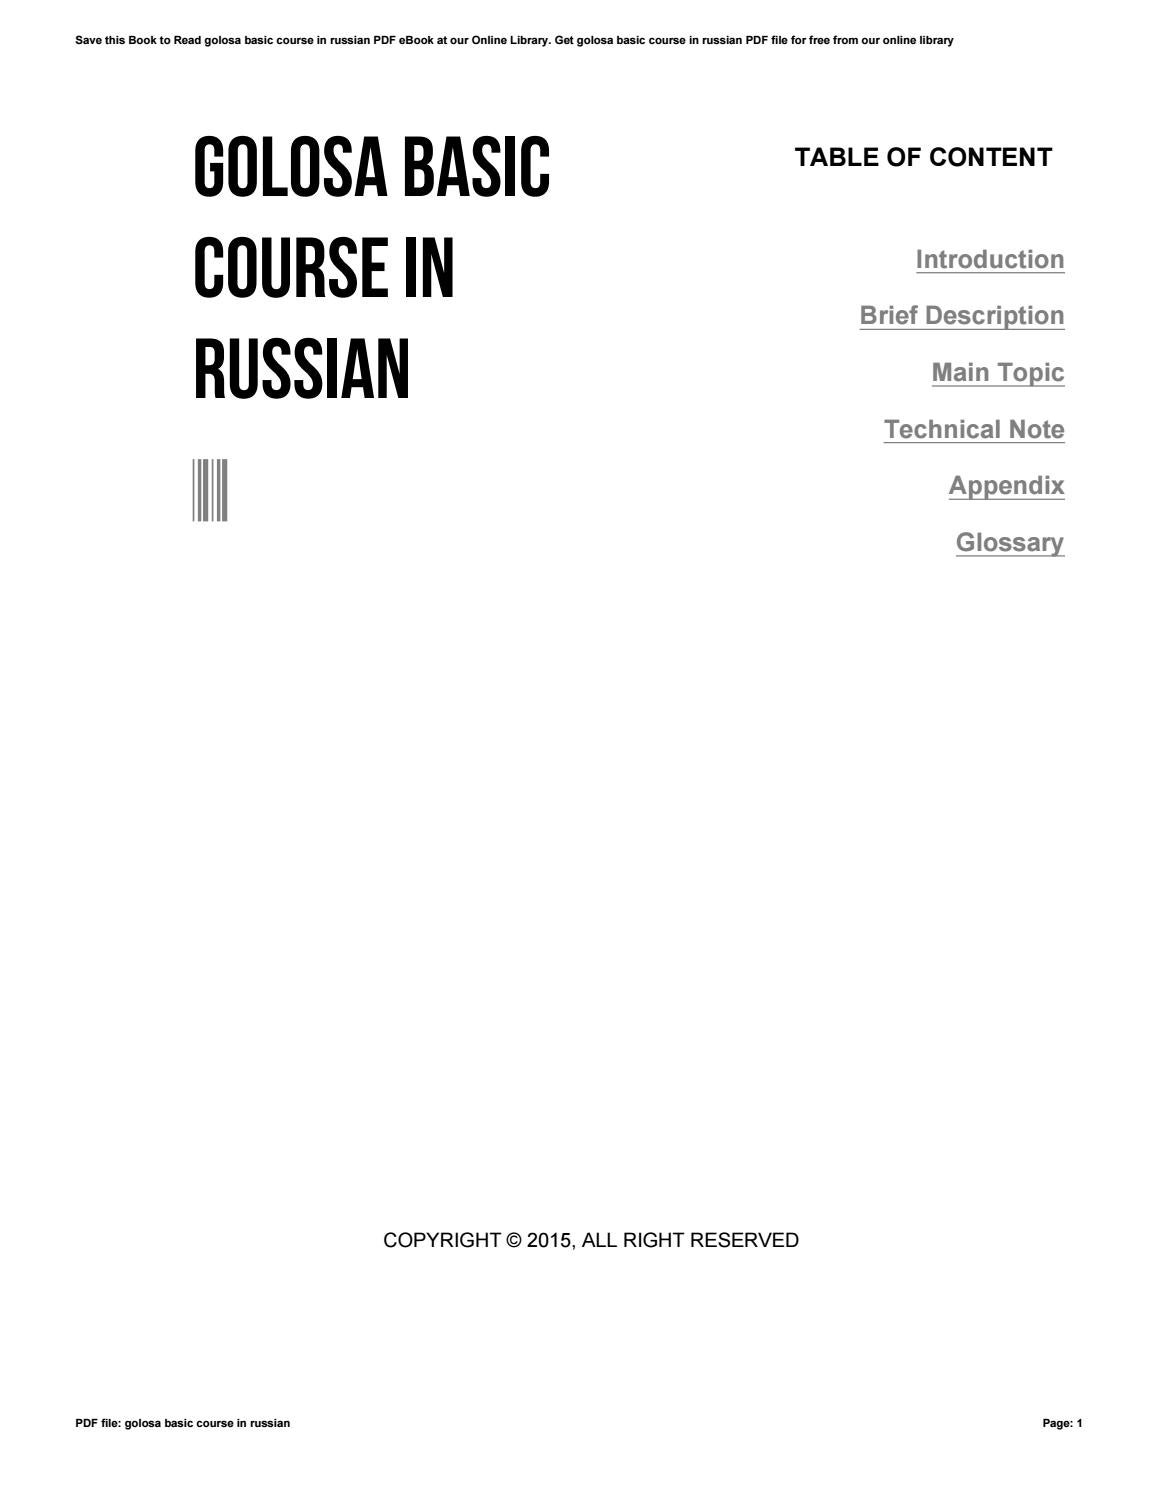 Golosa A Basic Course In Russian Pdf